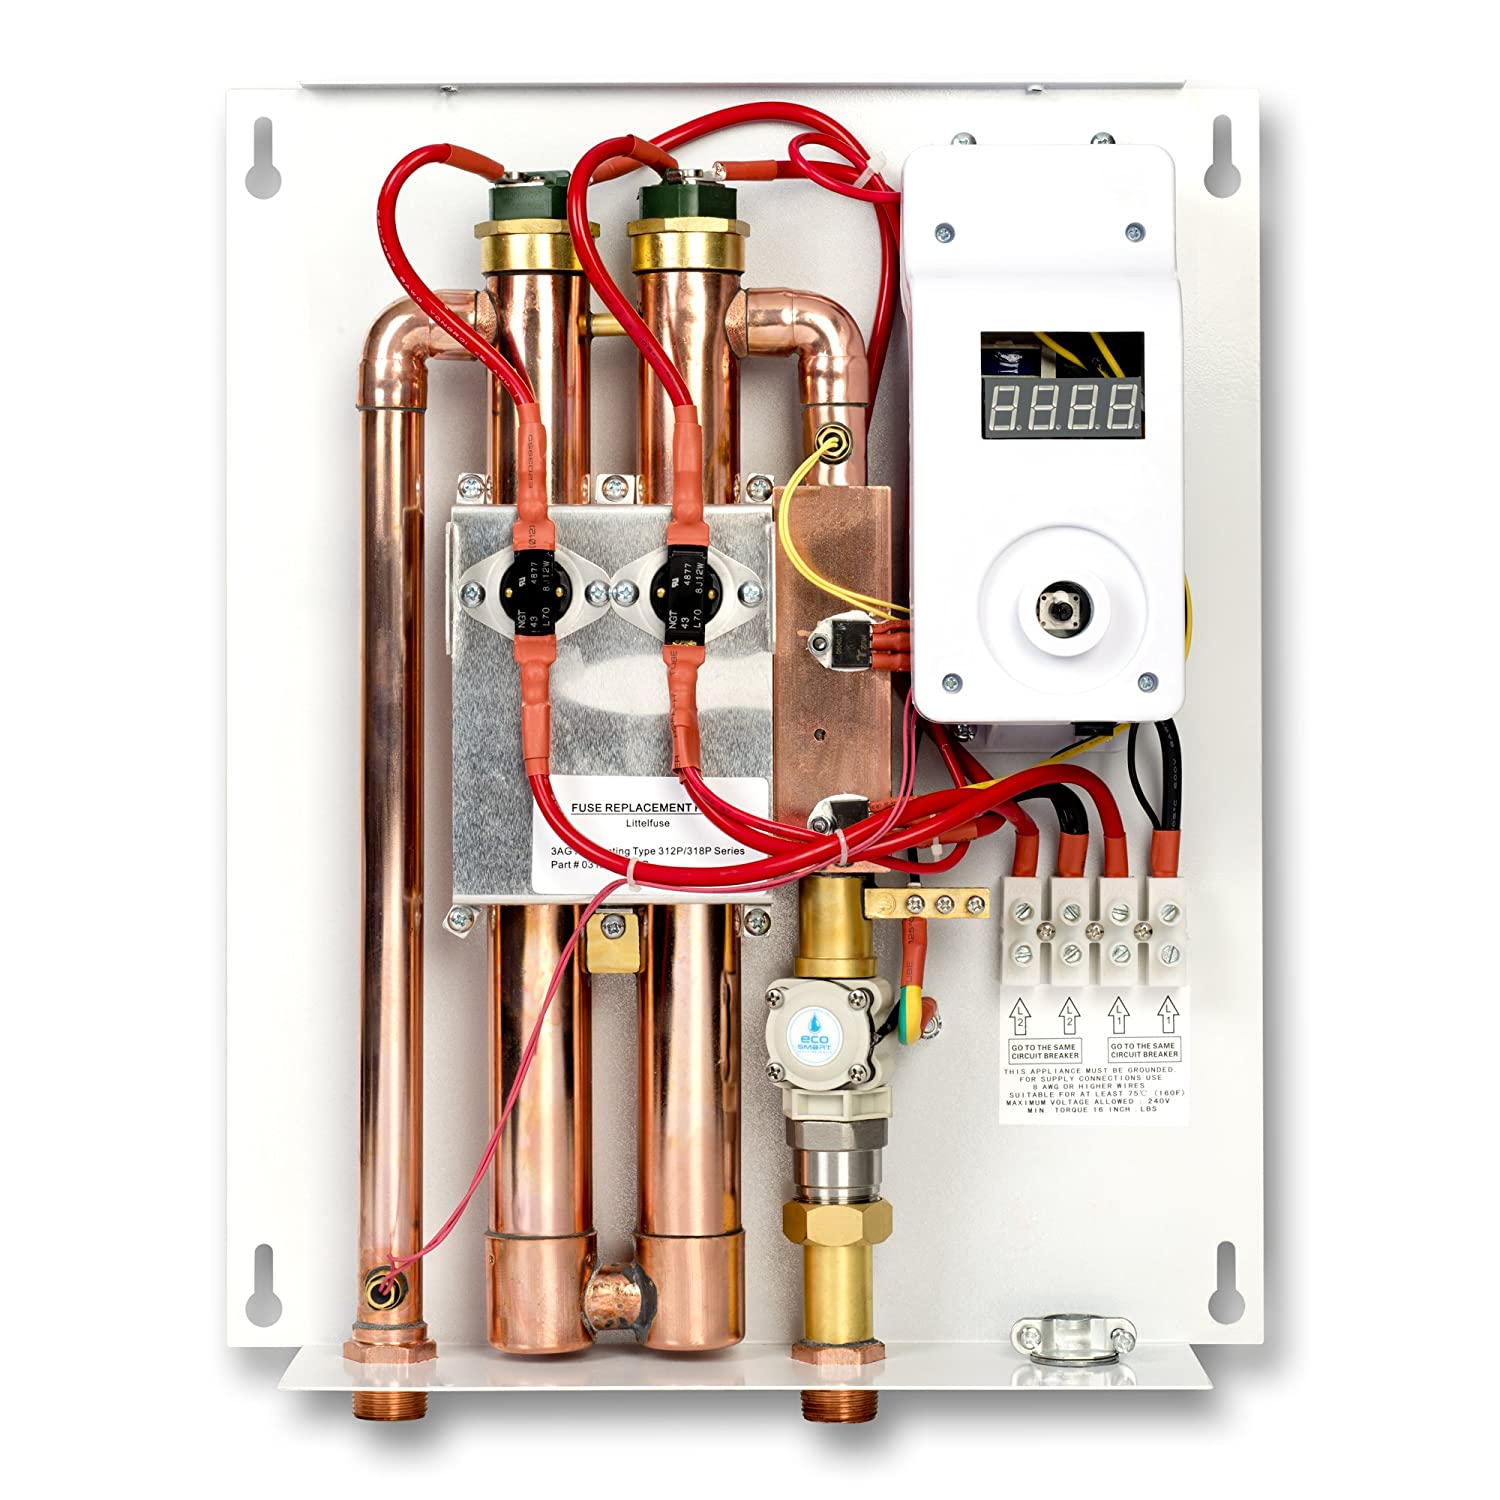 81Tny3DEHPL._SL1500_ ecosmart eco 18 electric tankless water heater, 18 kw at 240 volts water heater wiring schematic at nearapp.co